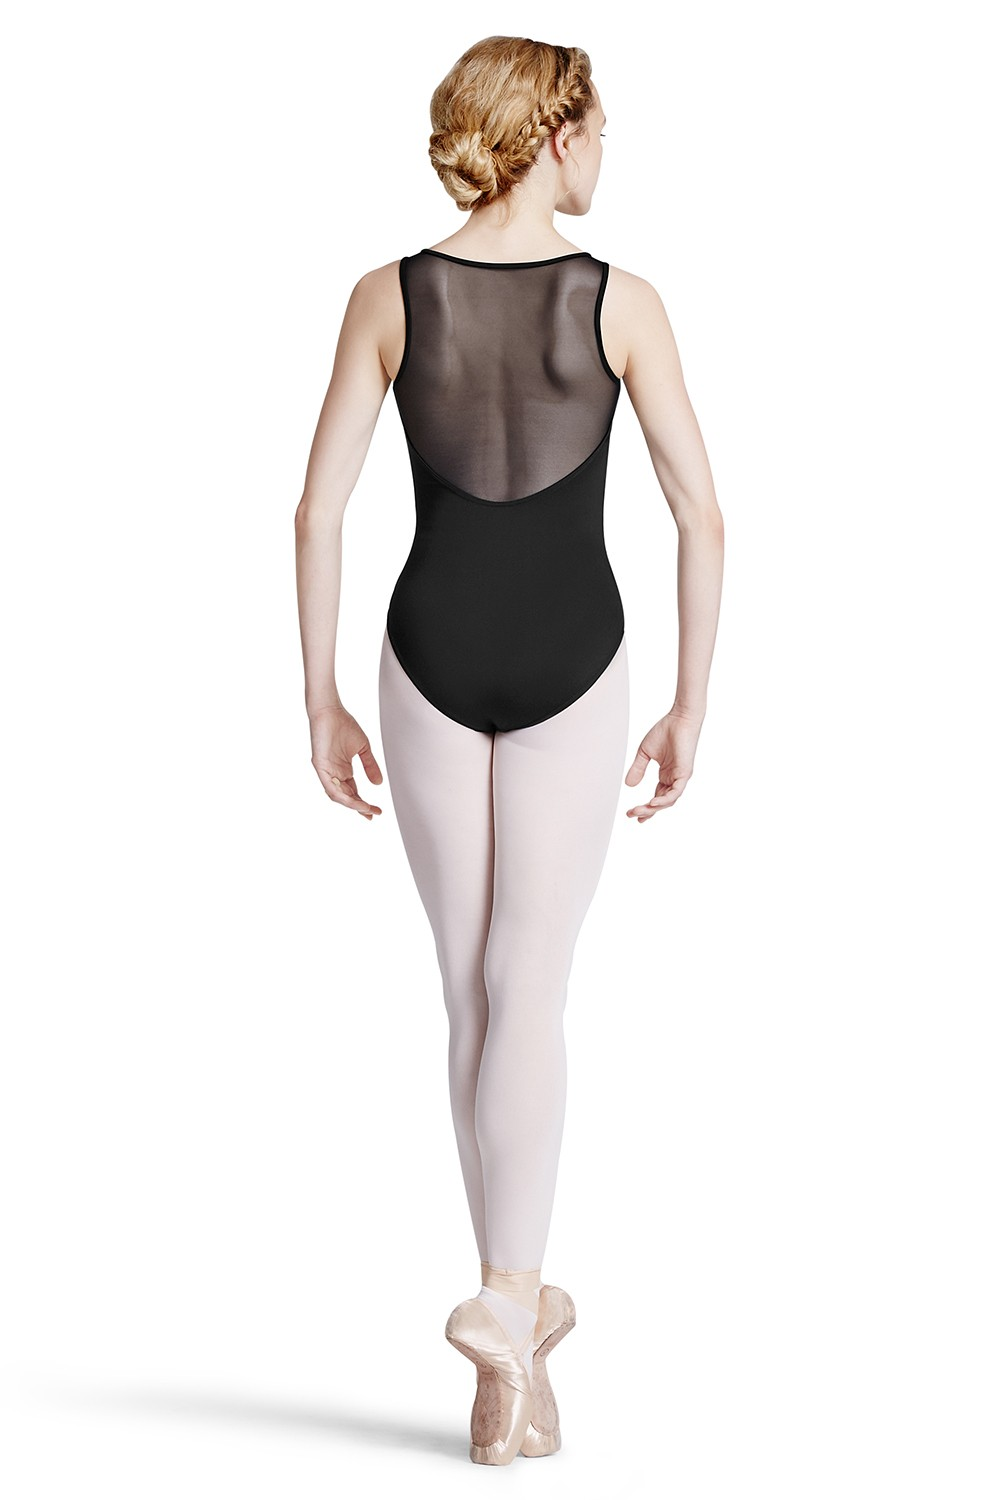 Briolette Women's Dance Leotards